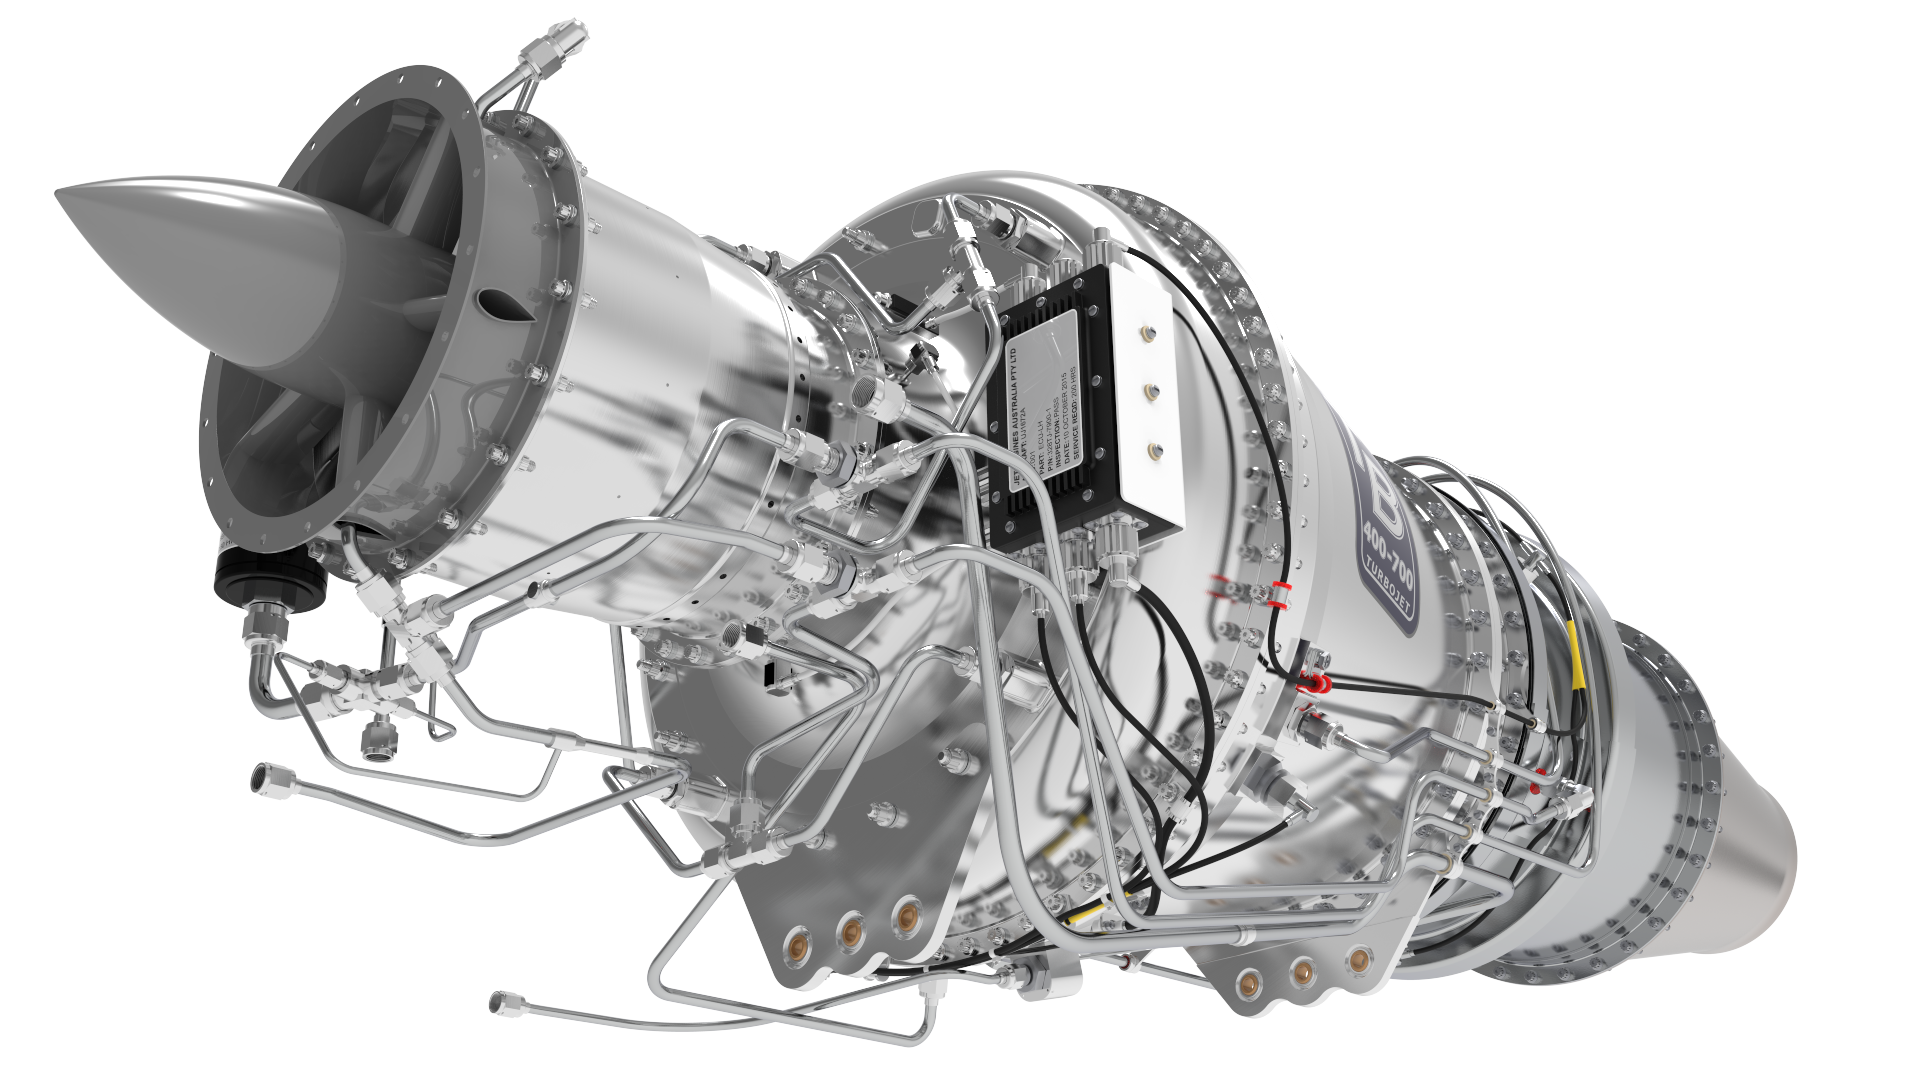 Jet Engine_High Res Renders 1.26